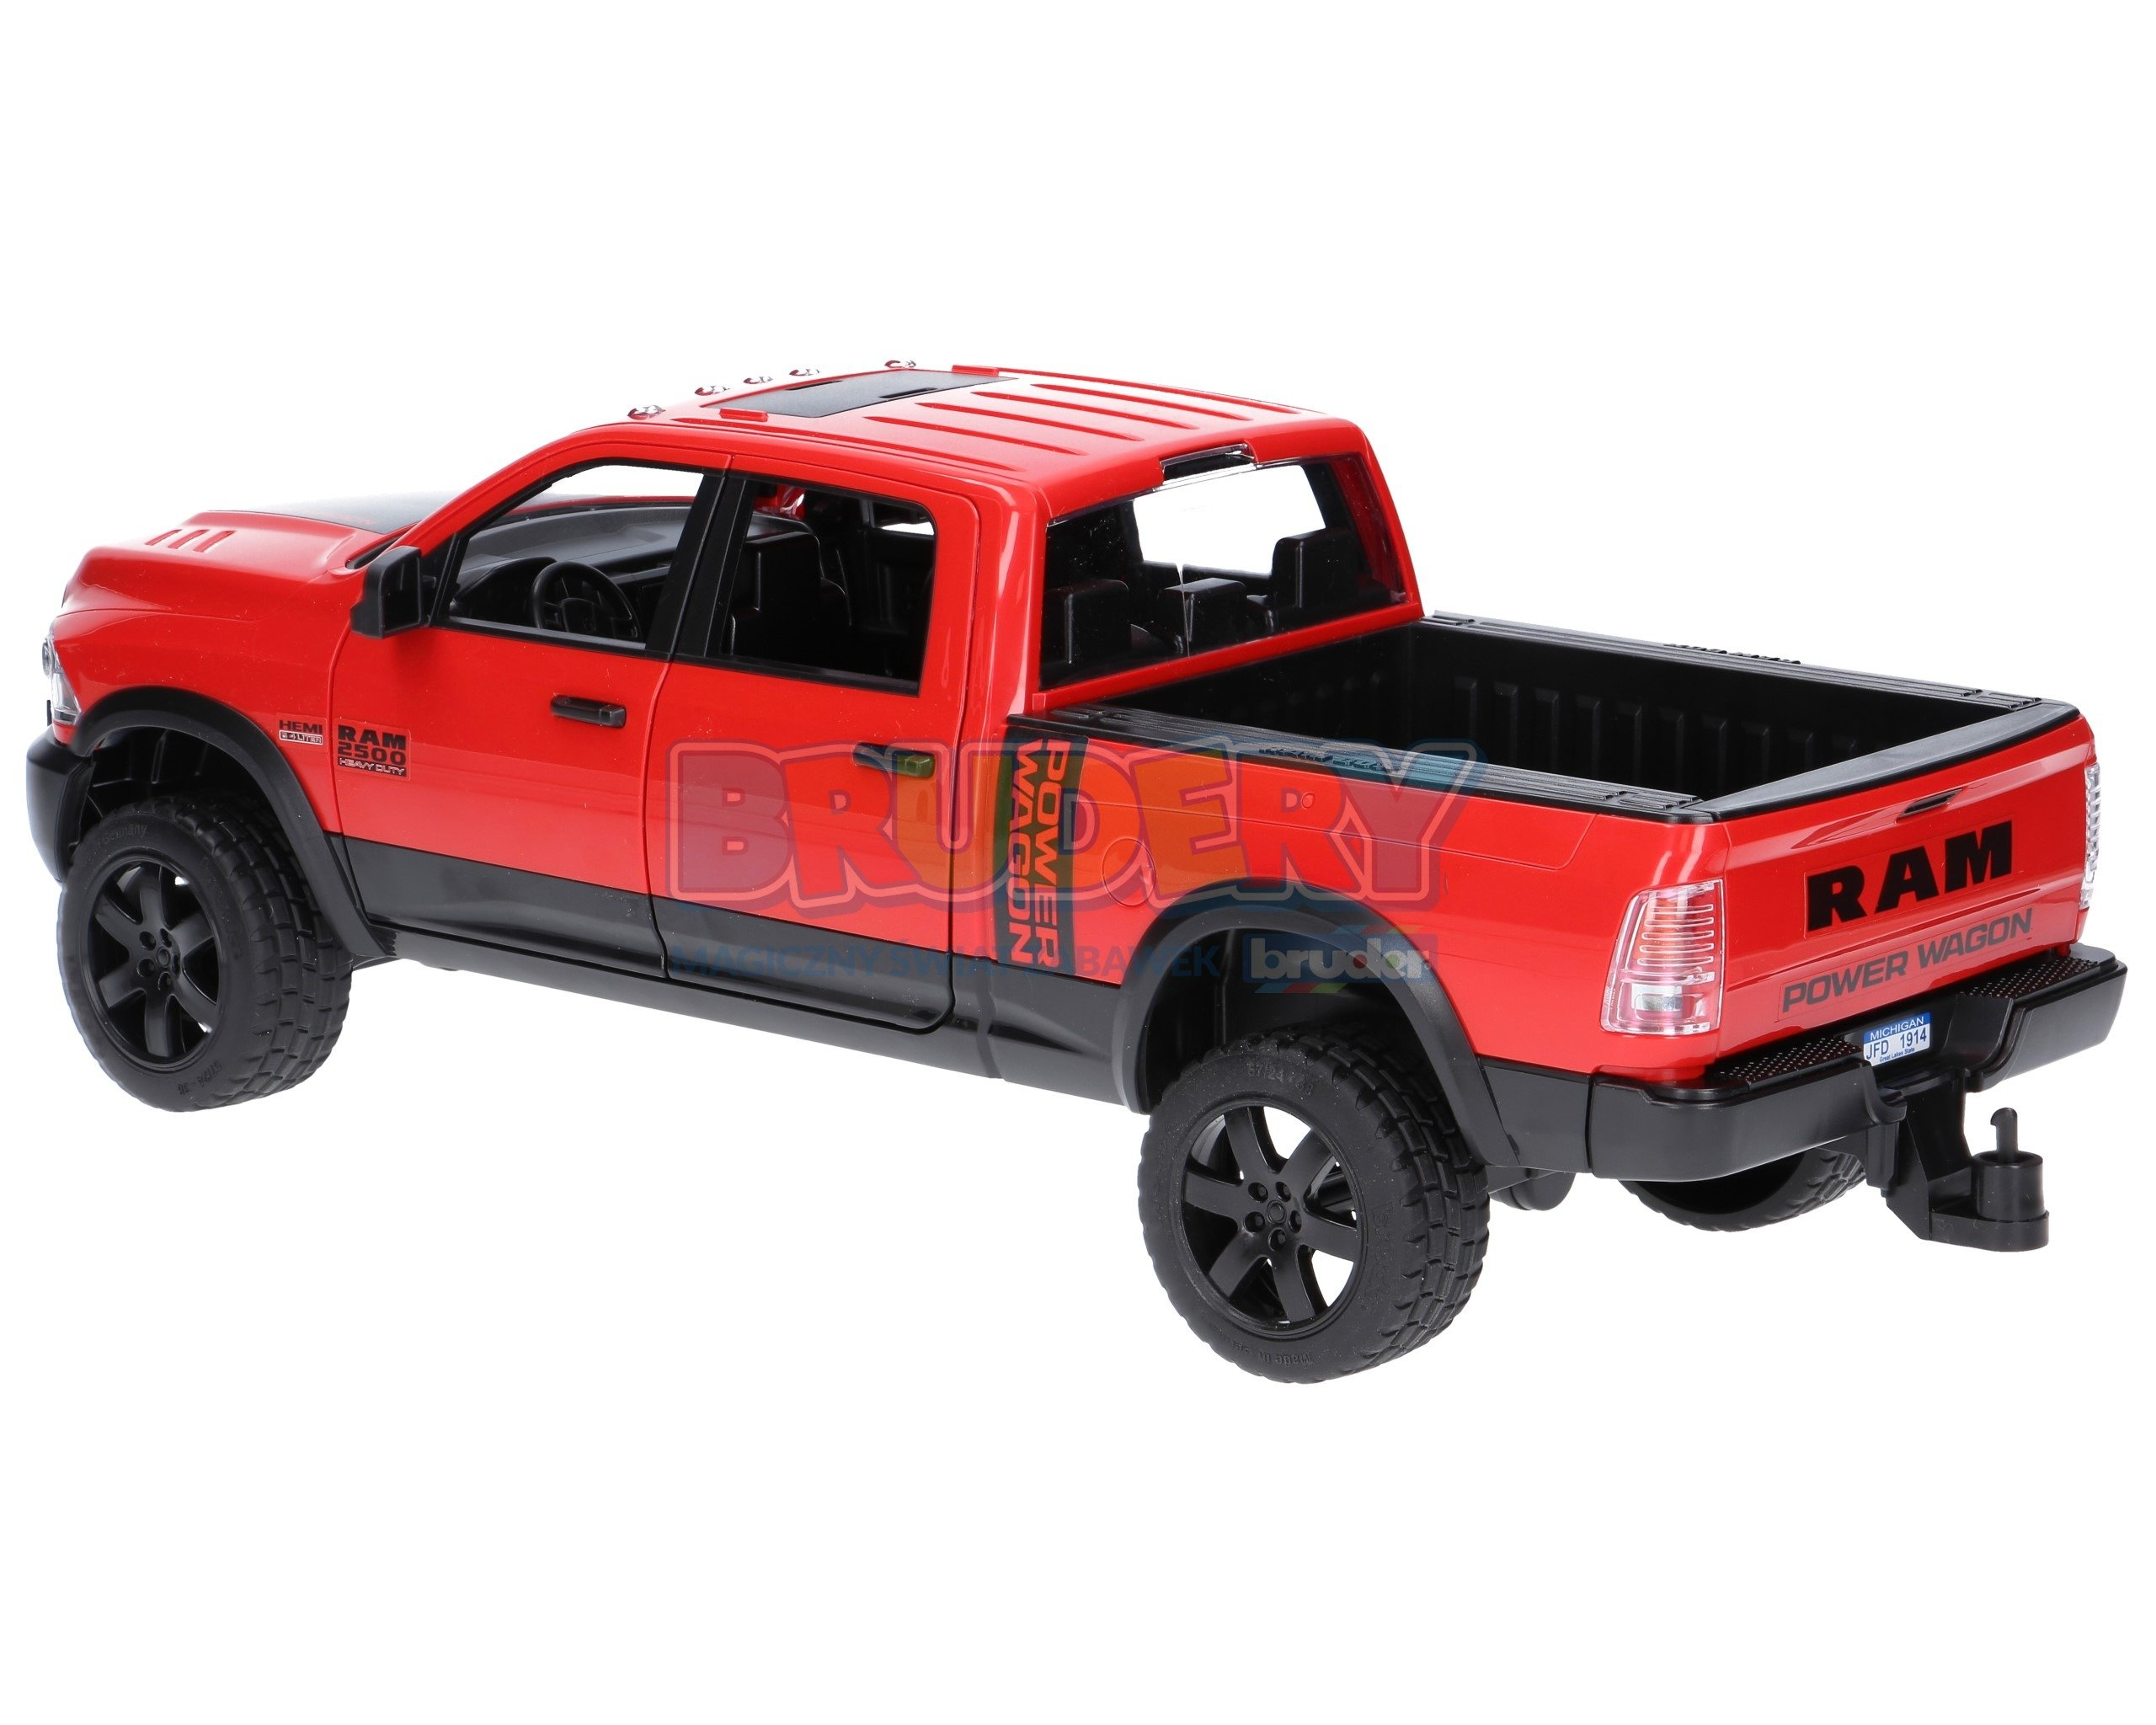 Bruder 02500 Pick-up RAM 2500 Power Wagon